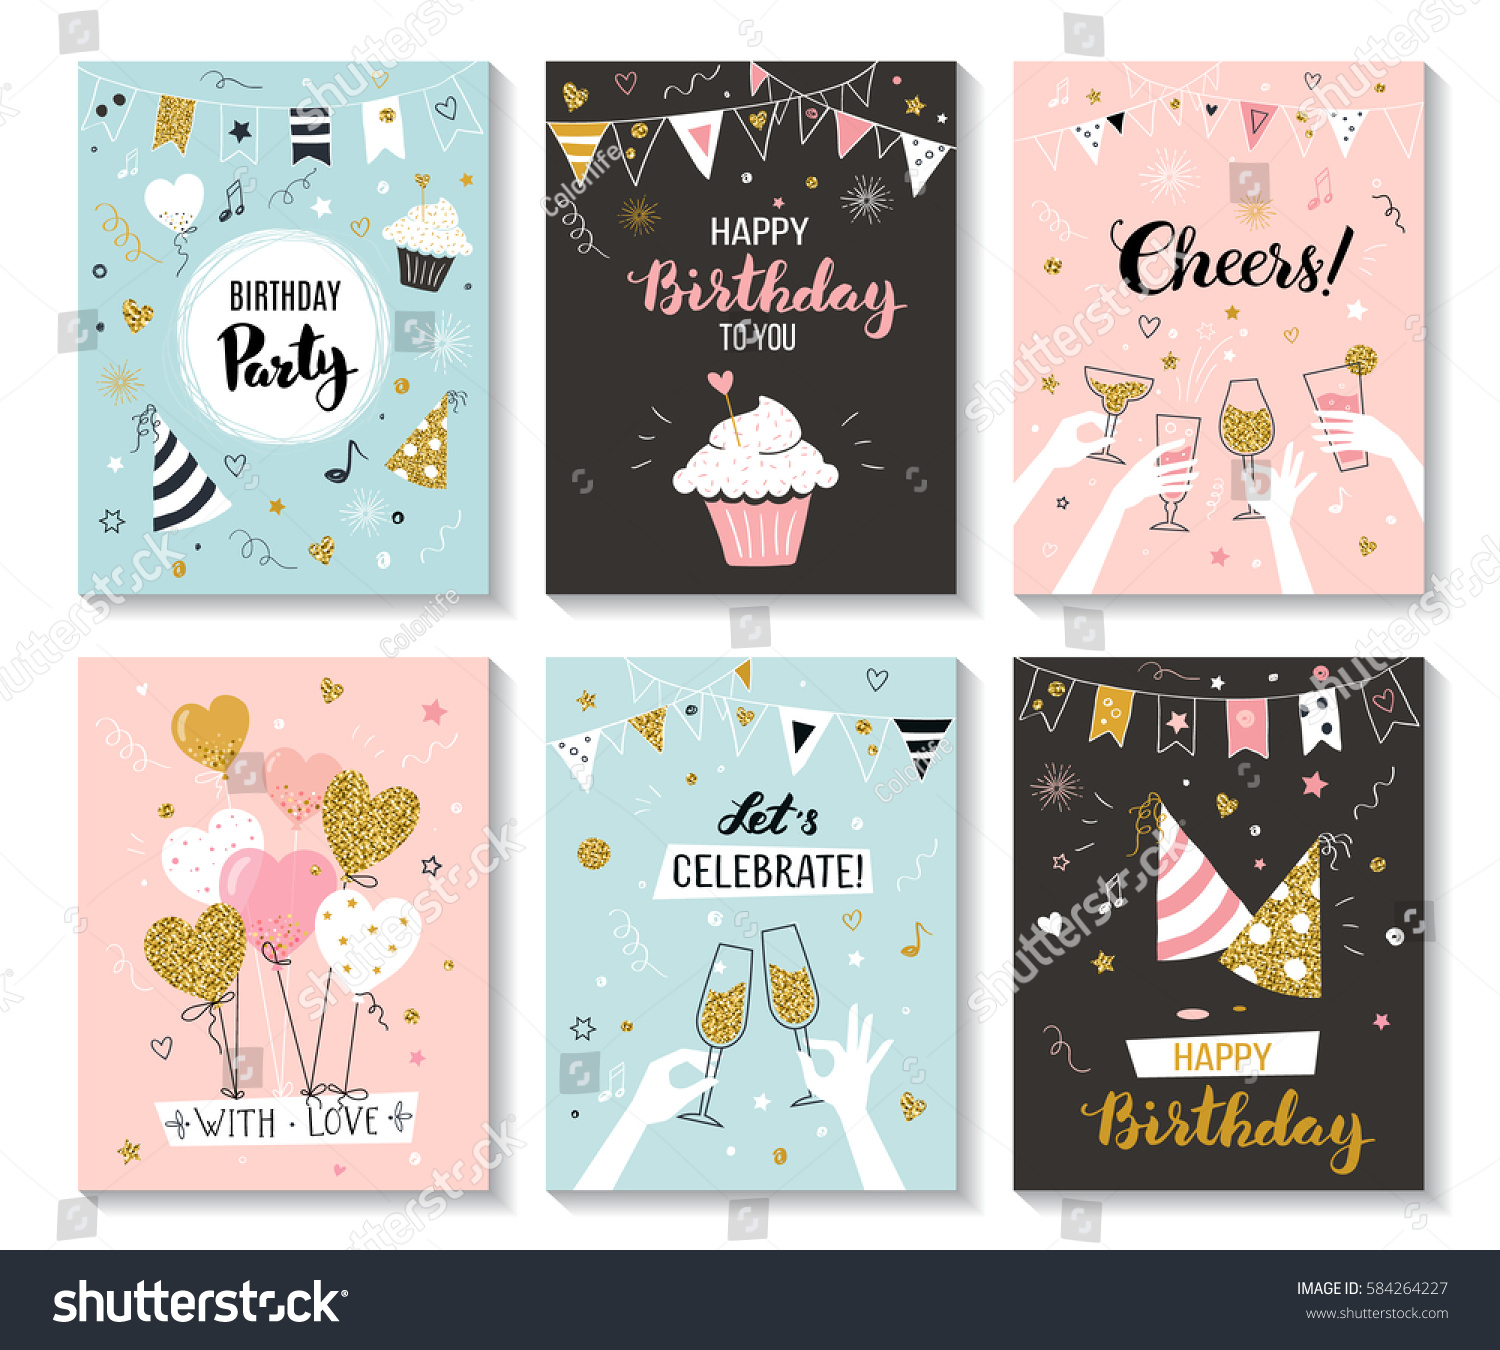 happy birthday greeting card party invitation のベクター画像素材